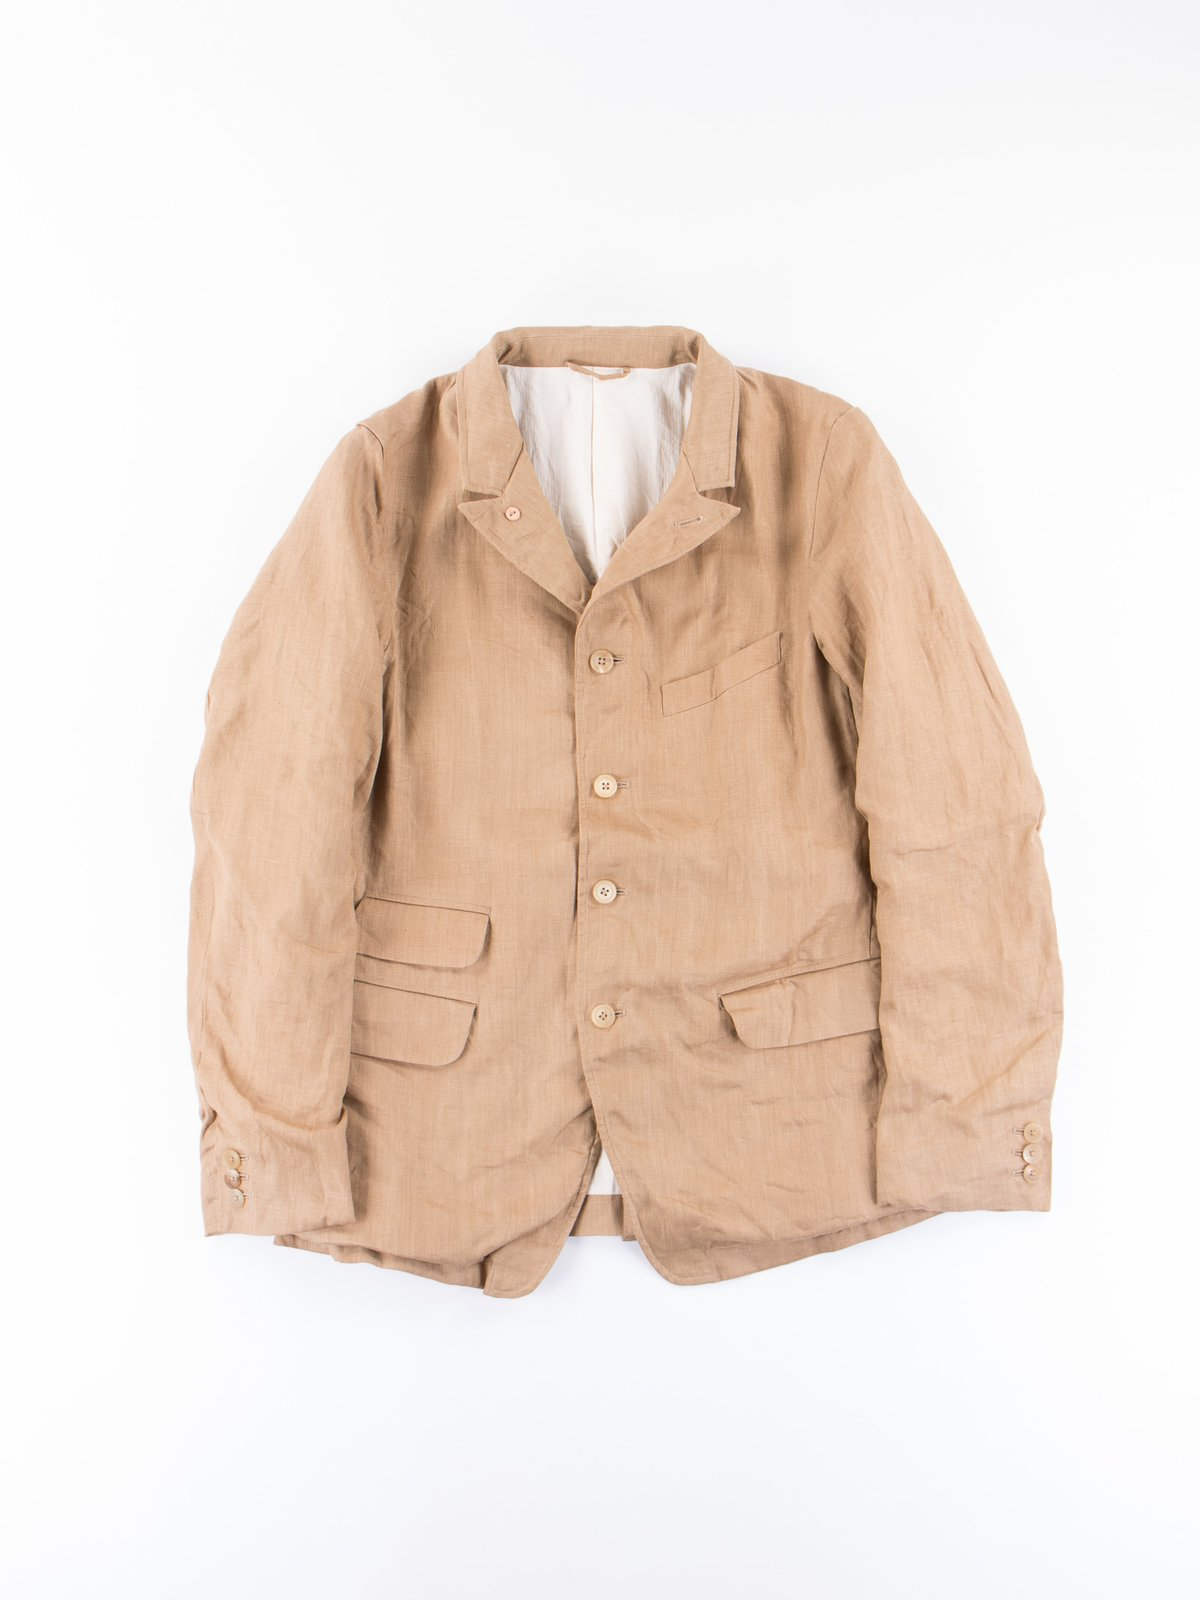 Beige Linen Old Potter Jacket - Image 1